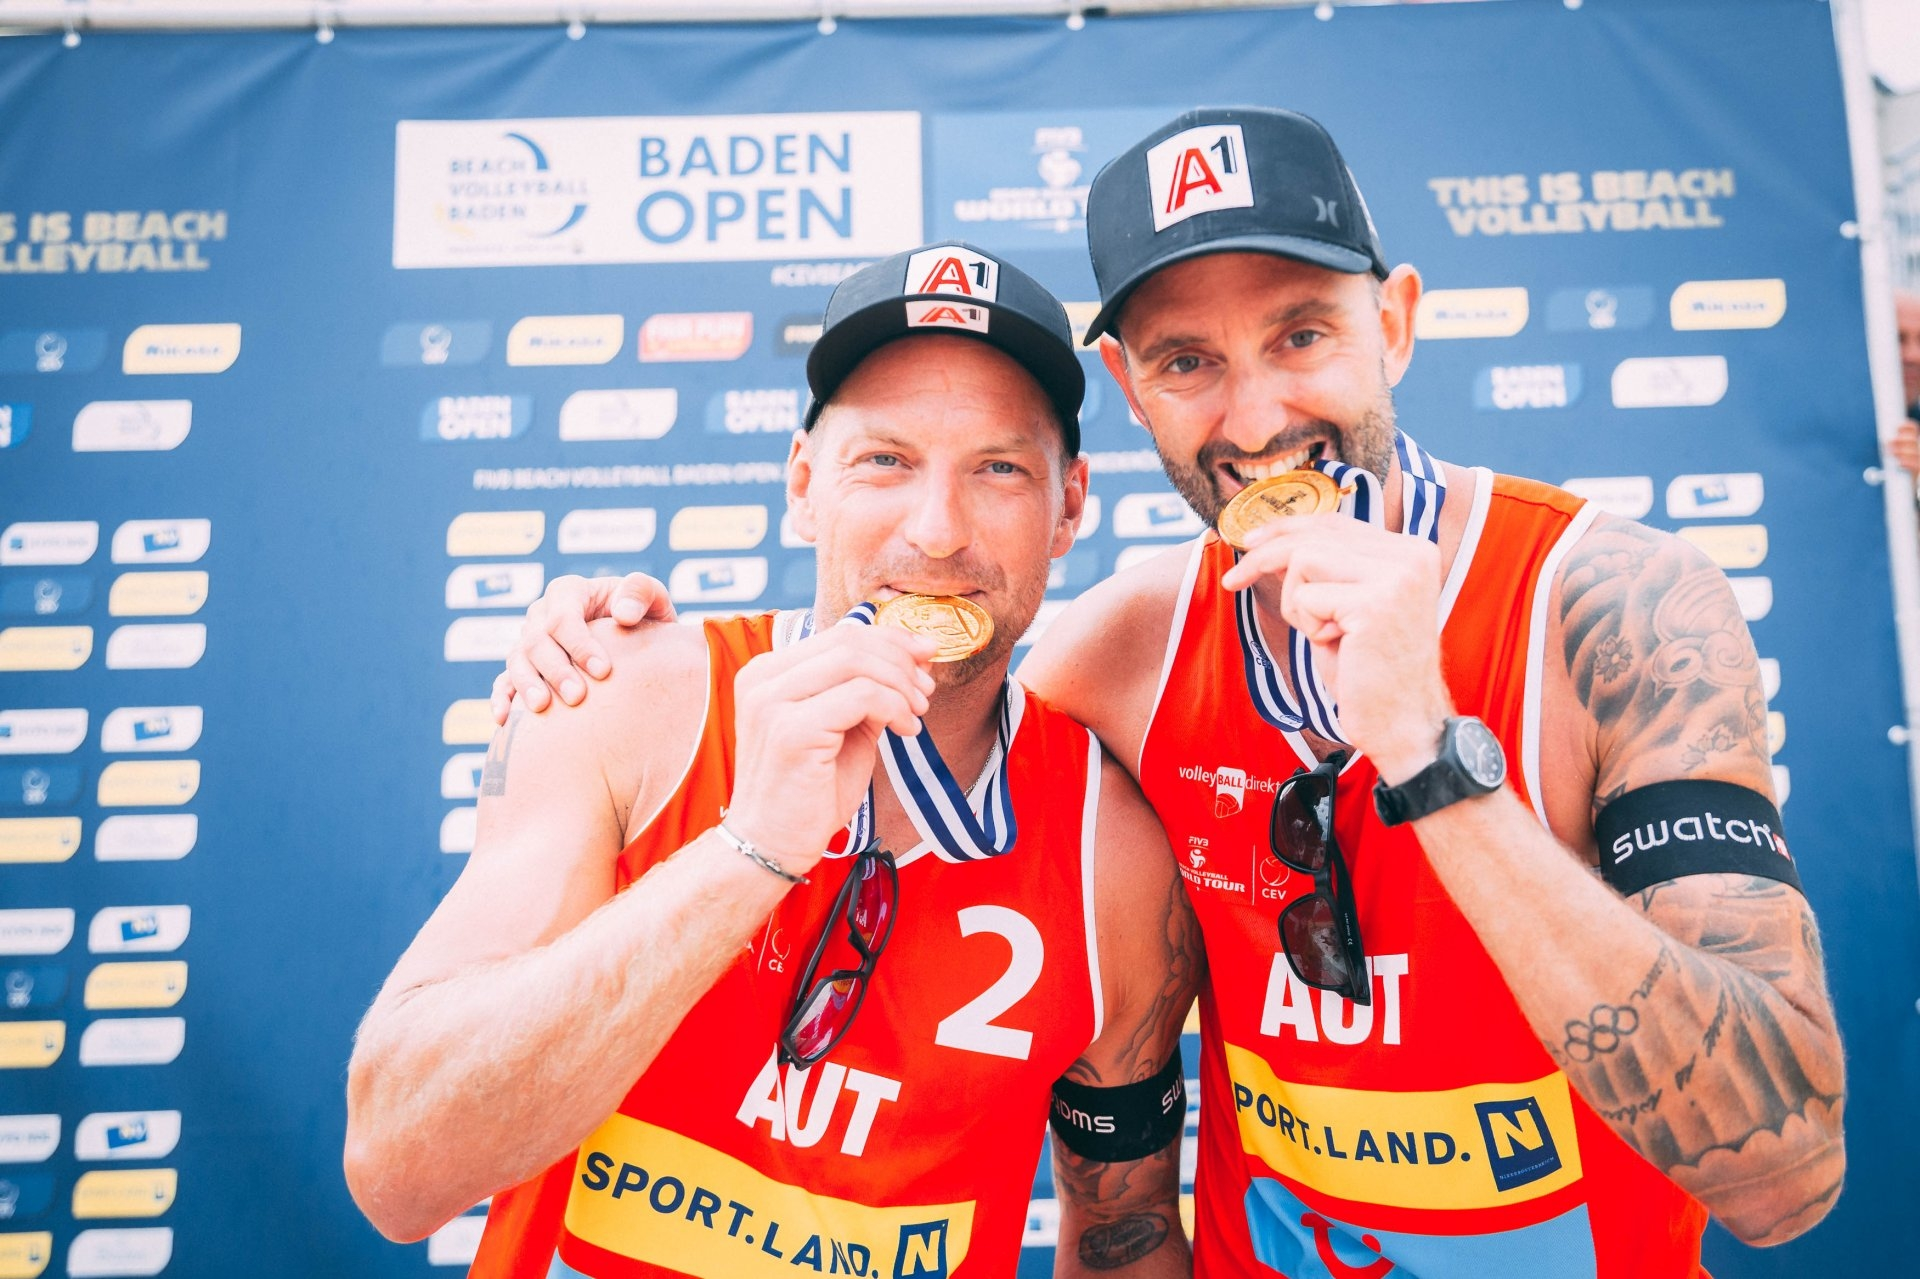 Horst and Doppler celebrate their first title in the World Tour ( Photocredit: FIVB)